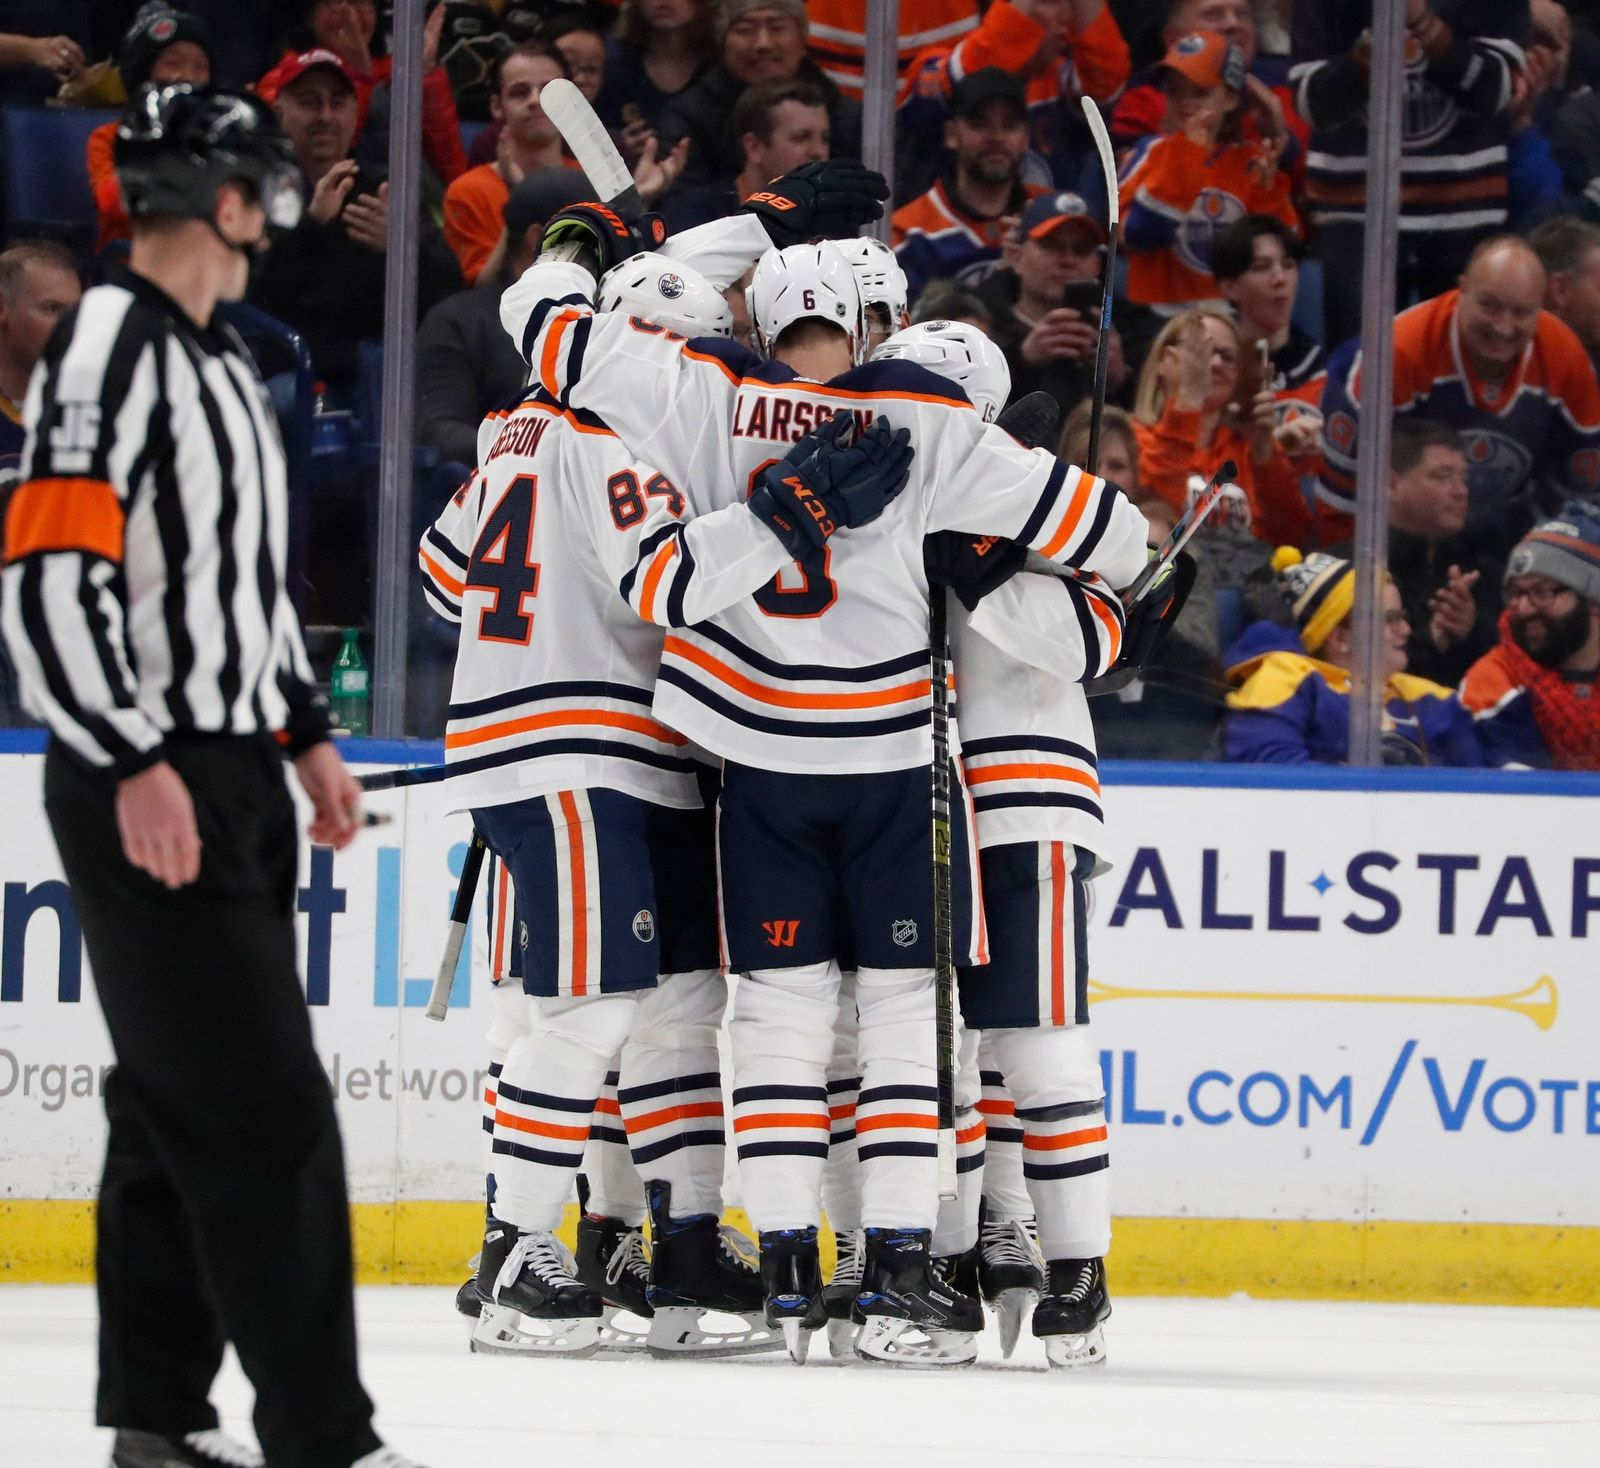 Edmonton Oilers celebrate their second goal in the first period.